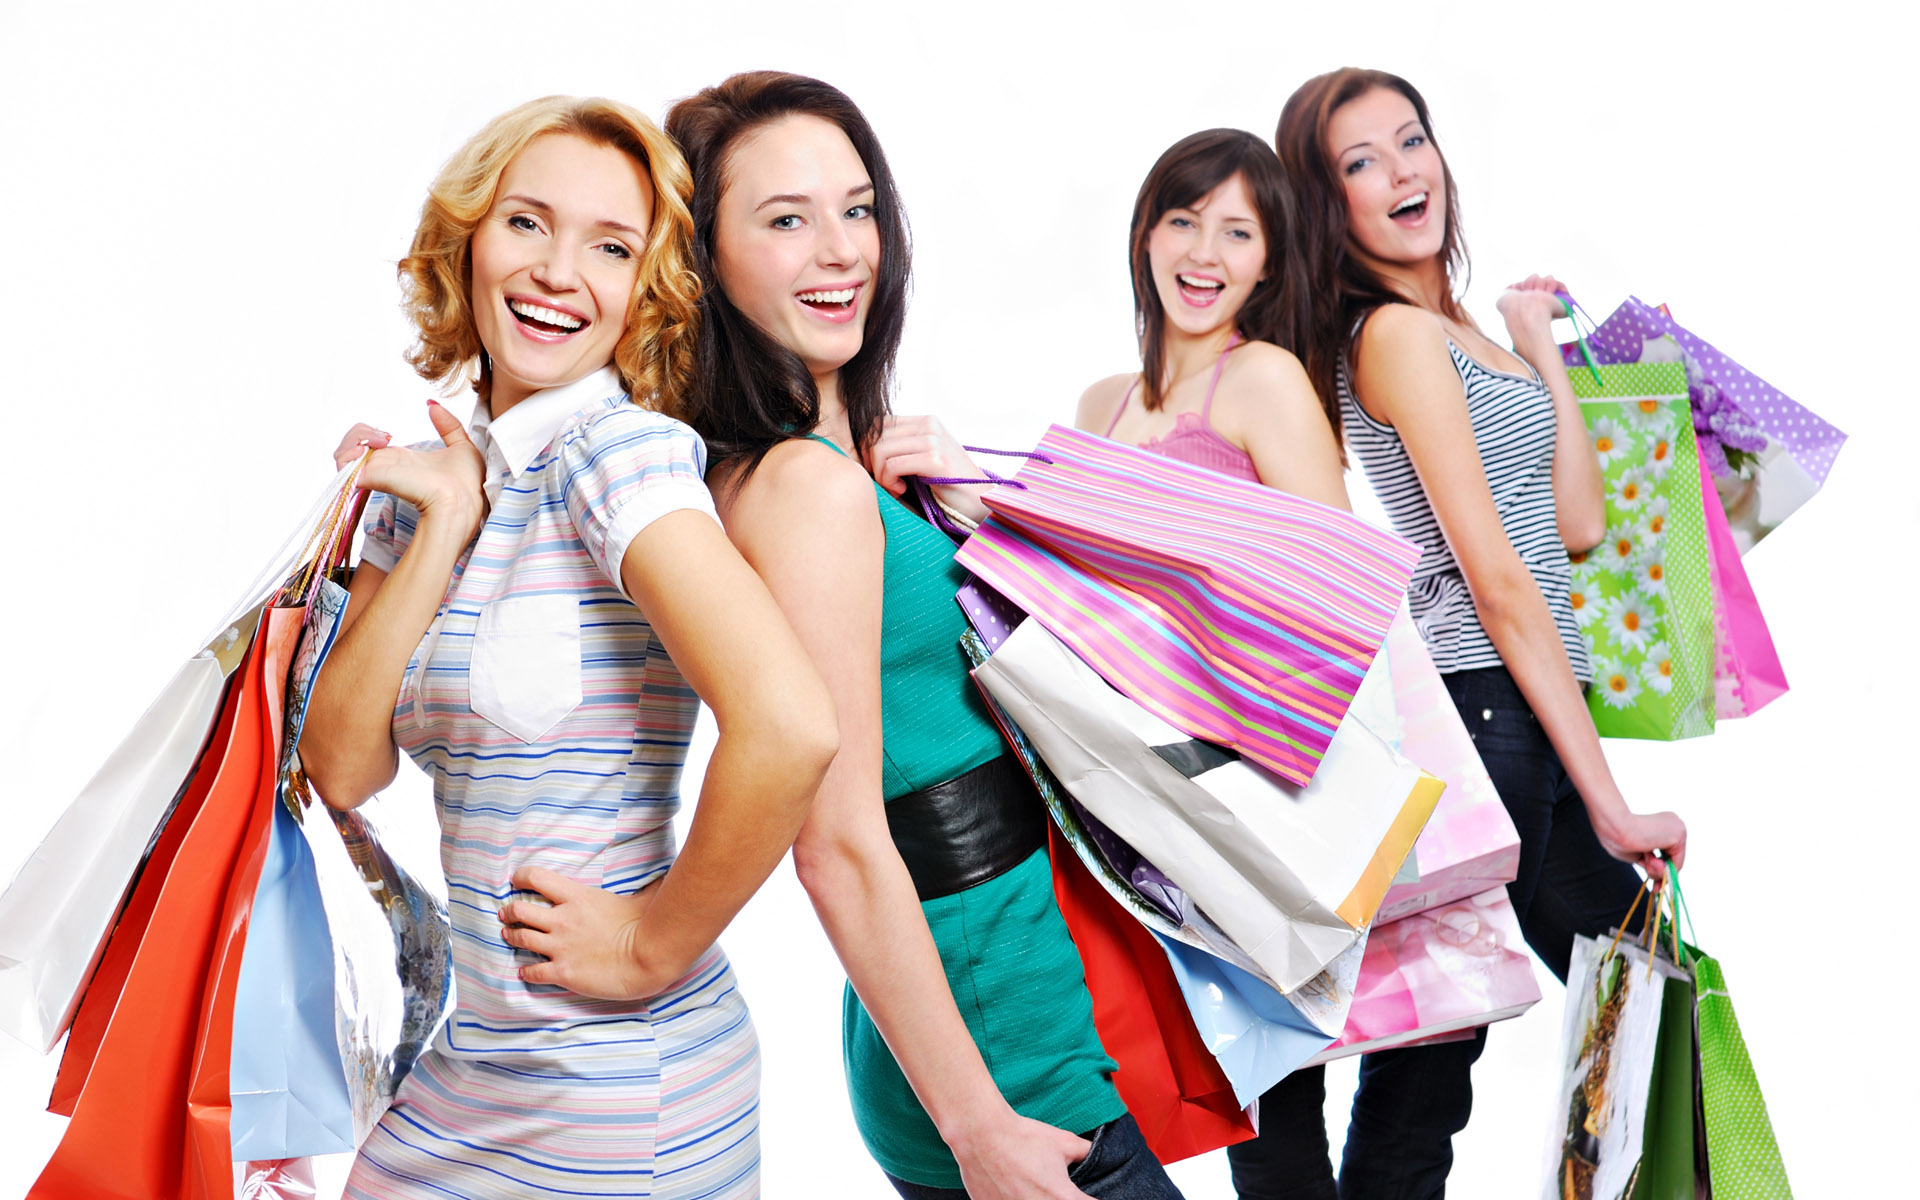 Shop for Clothing and read product reviews. Find cheap prices on Clothing from a selection of brands and stores.